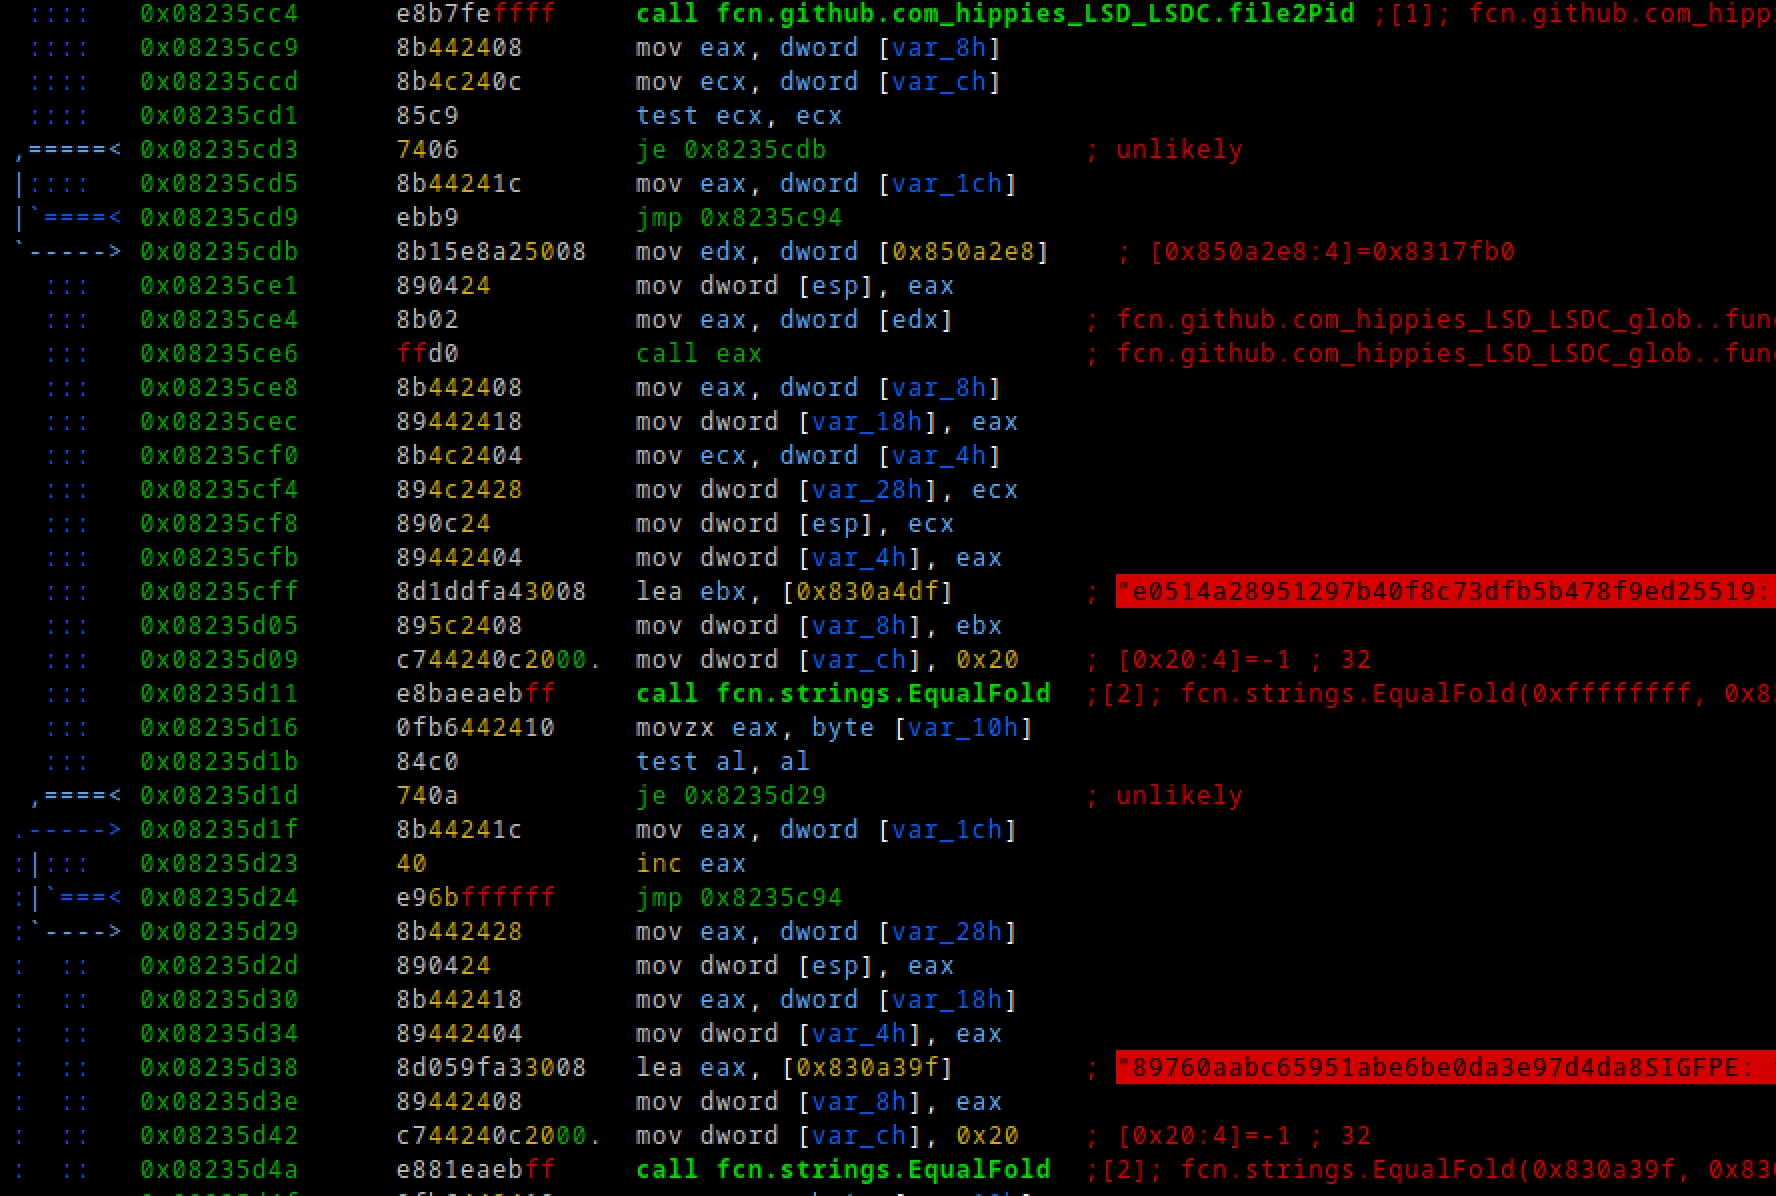 Screenshot showing the LSD malware comparing the MD5 hashes against two hardcoded values. The hardcoded values matches the hashes for the 32-bit and the 64-bit miner.